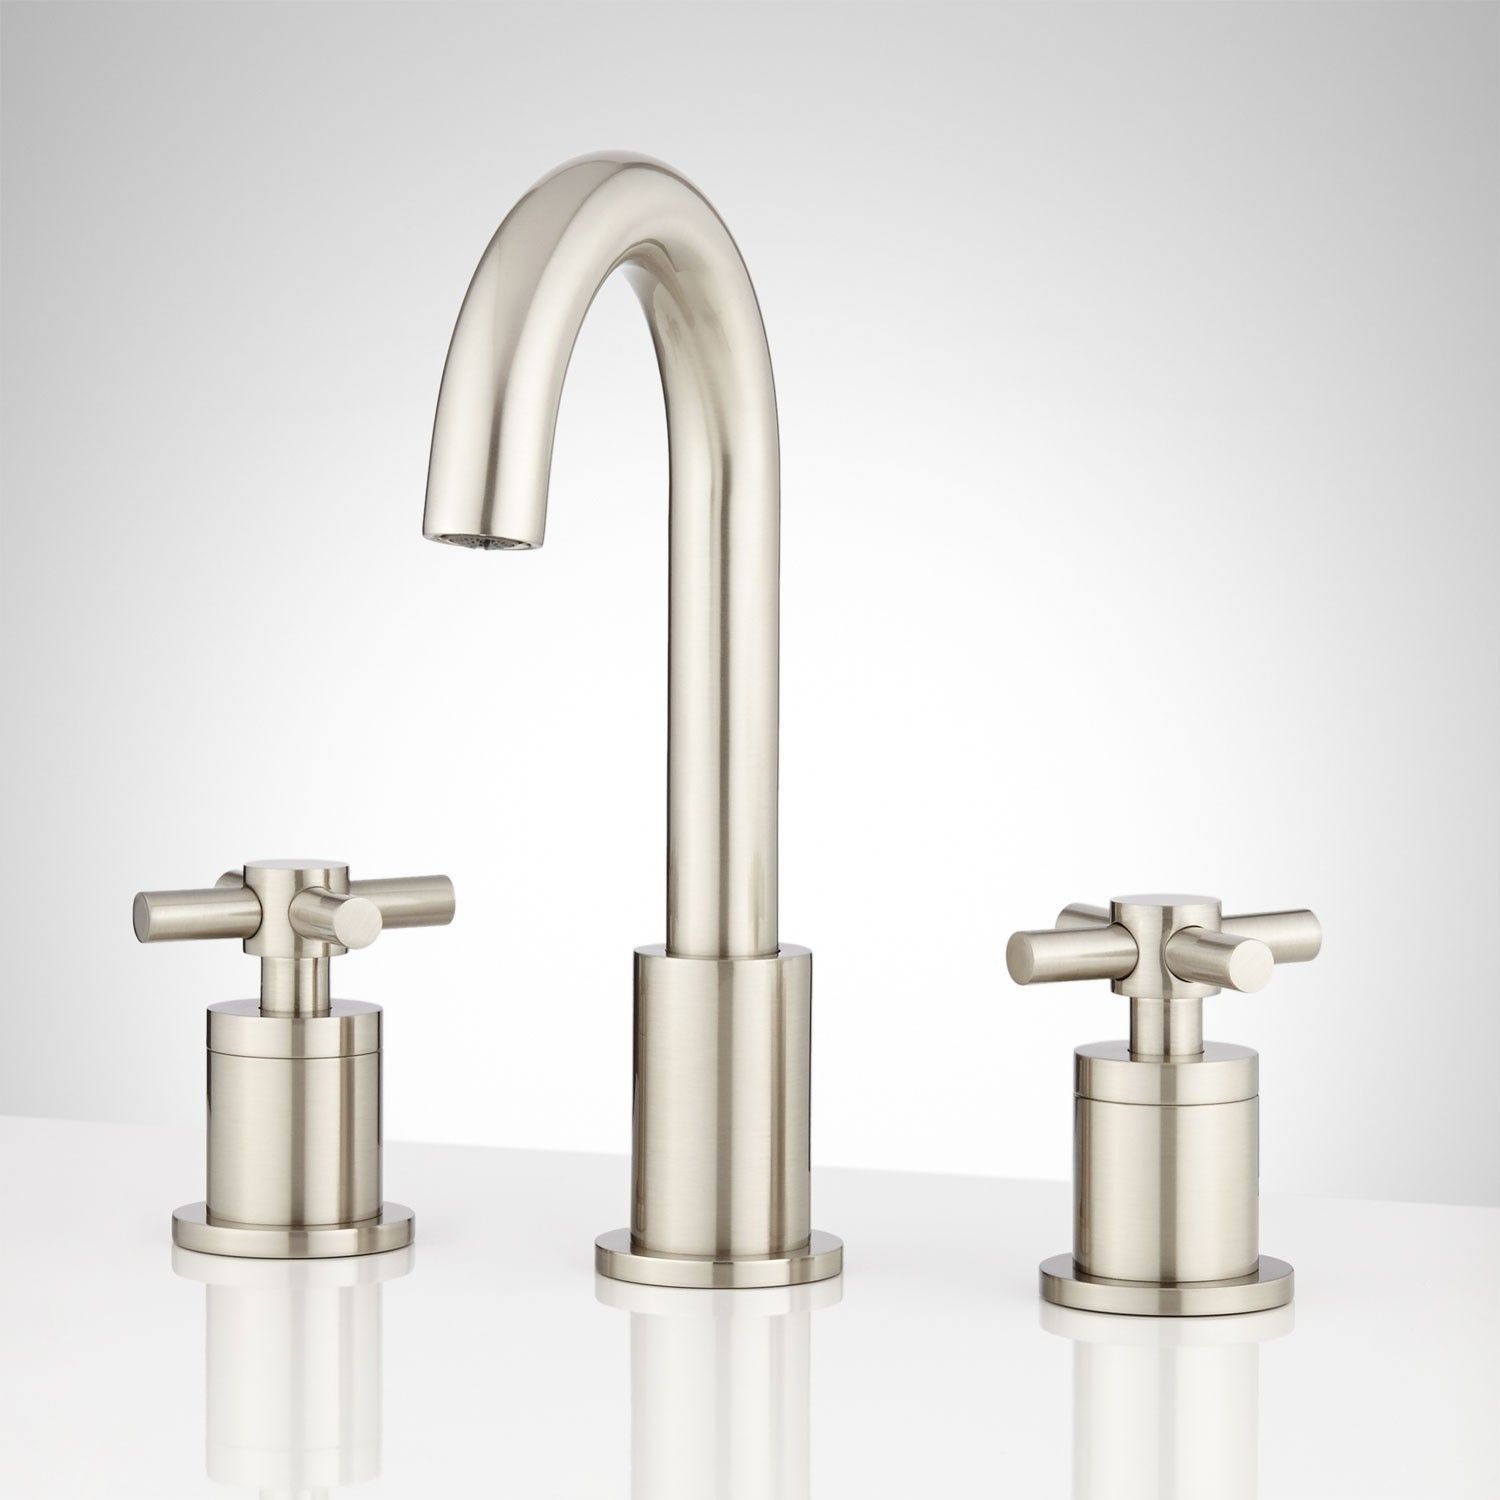 Awesome Closeout Bathroom Faucets | Widespread bathroom faucet ...